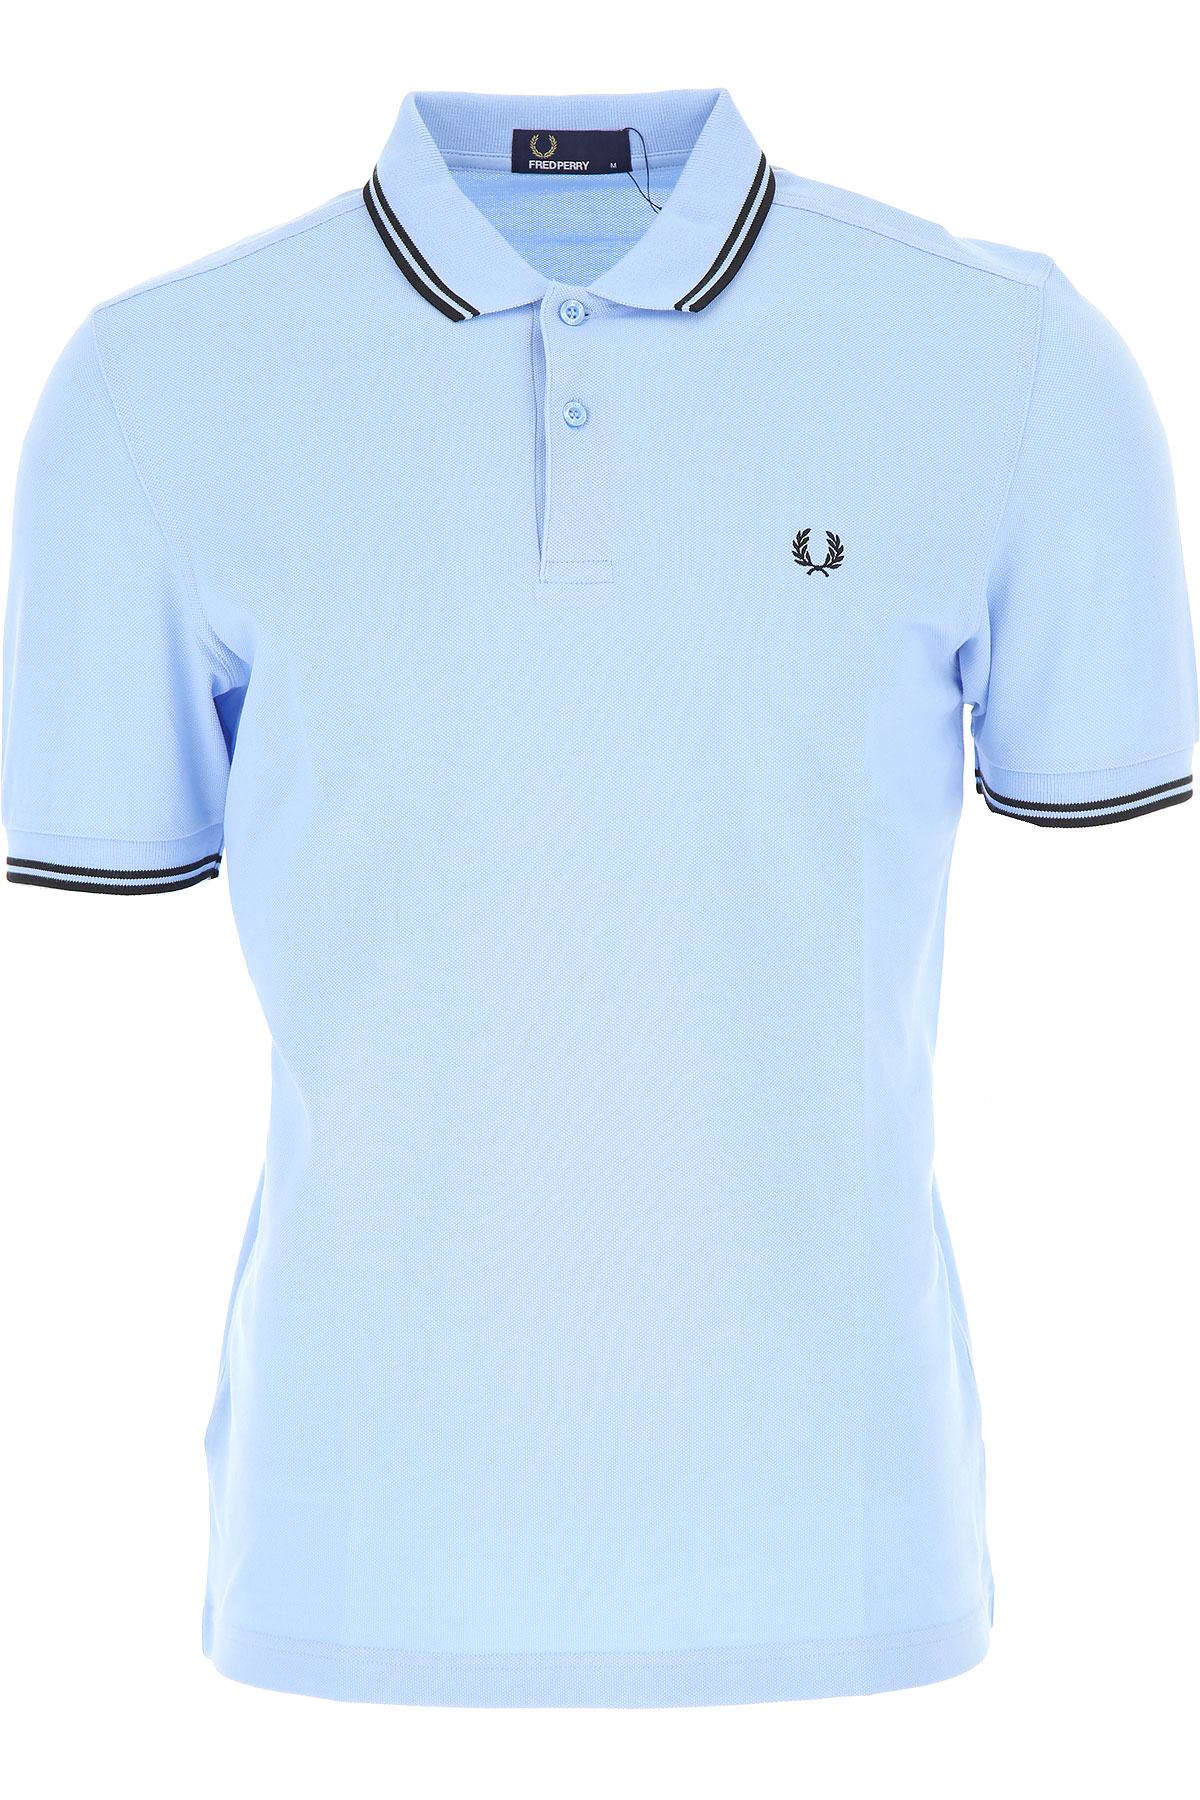 Image of Fred Perry Polo Shirt for Men, Sky Blue, Cotton, 2017, L M S XL